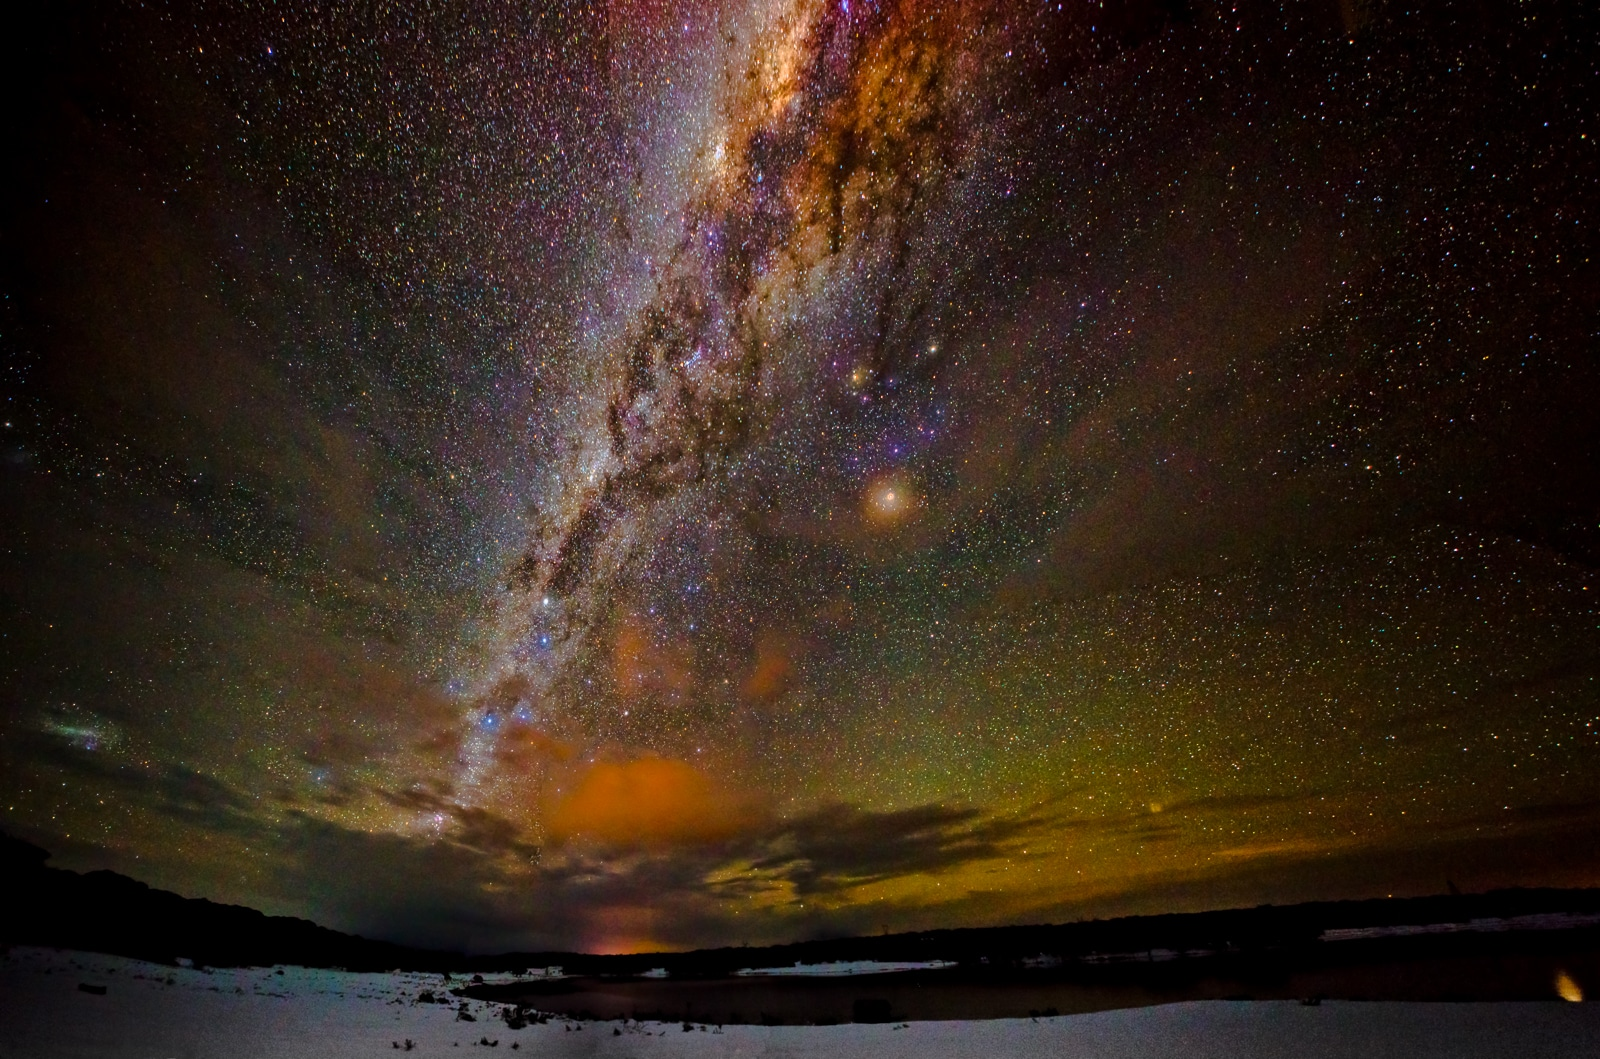 Milky Way - Snowy Mountains